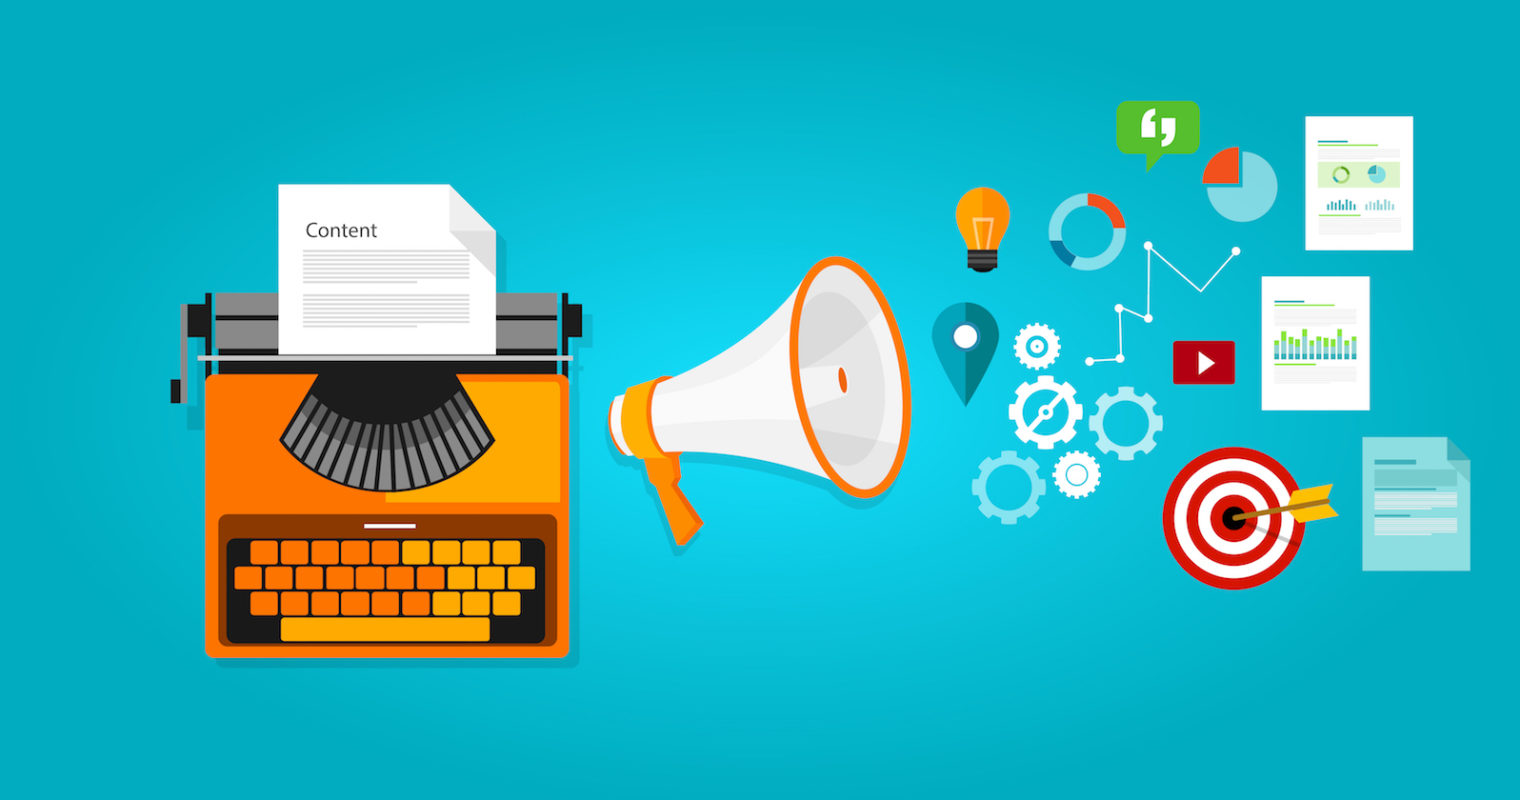 How a Link Outreach Campaign Boosts the Value of Your Content